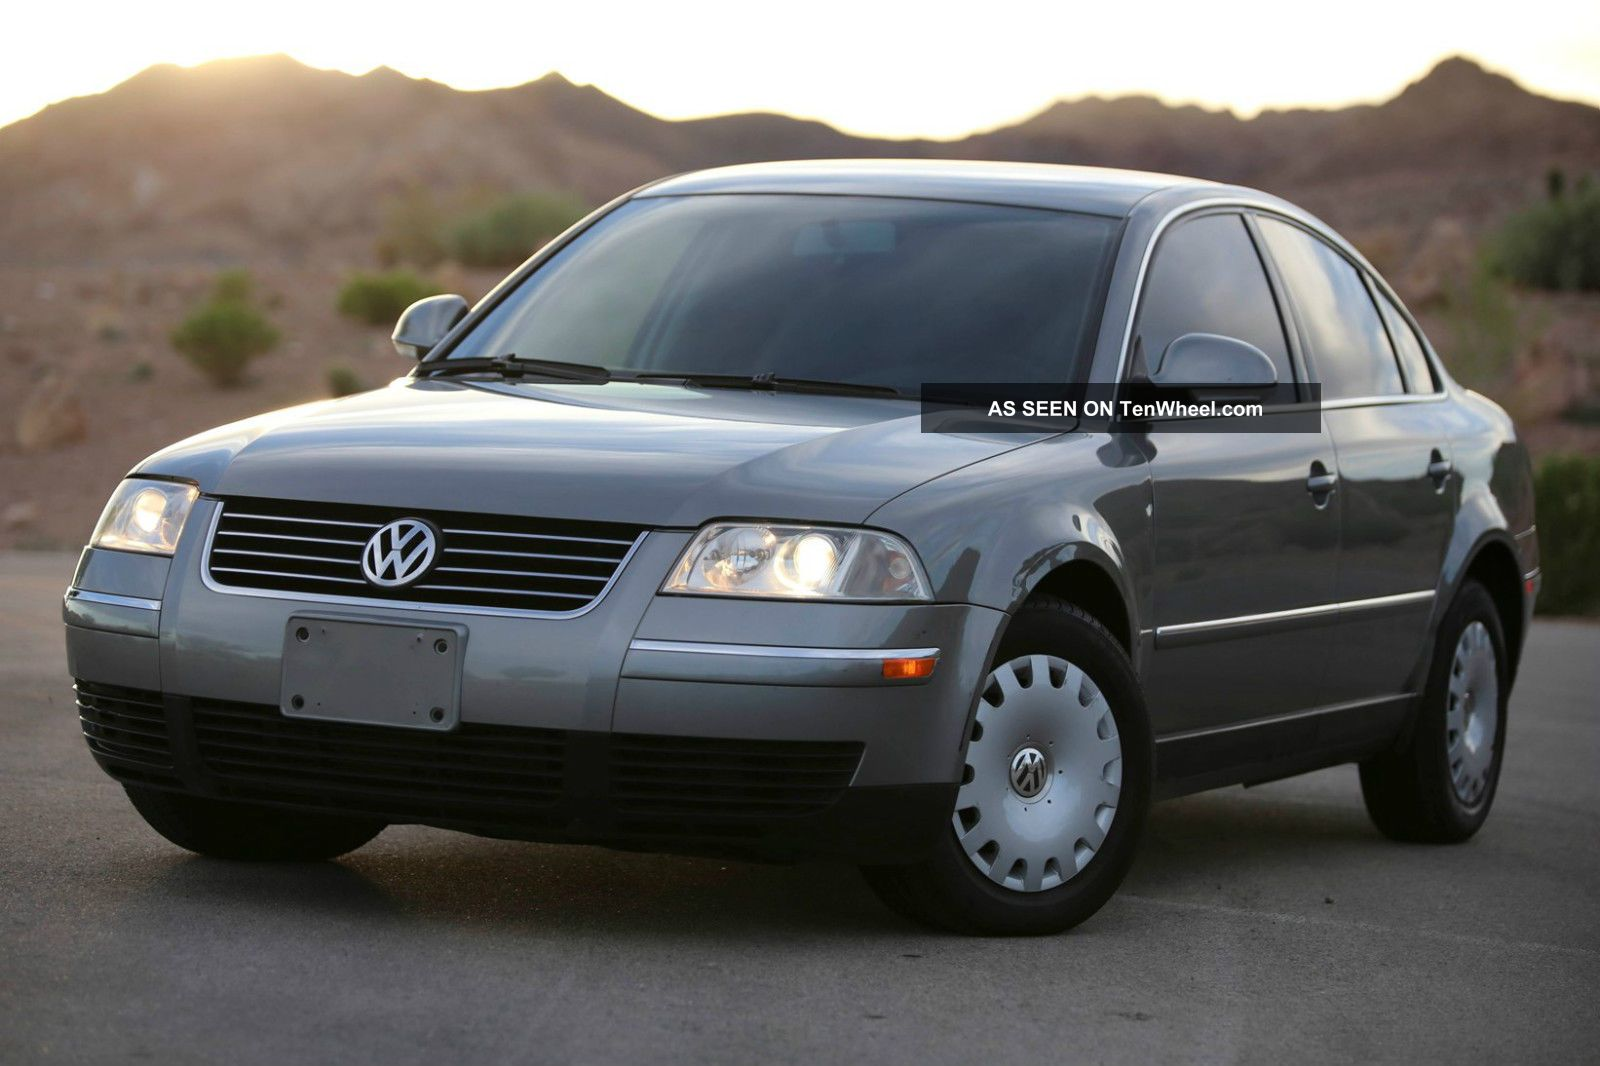 Dealer ' S Daily Driver 2005 Volkswagen Passat Turbo Diesel - I Love This Car Passat photo